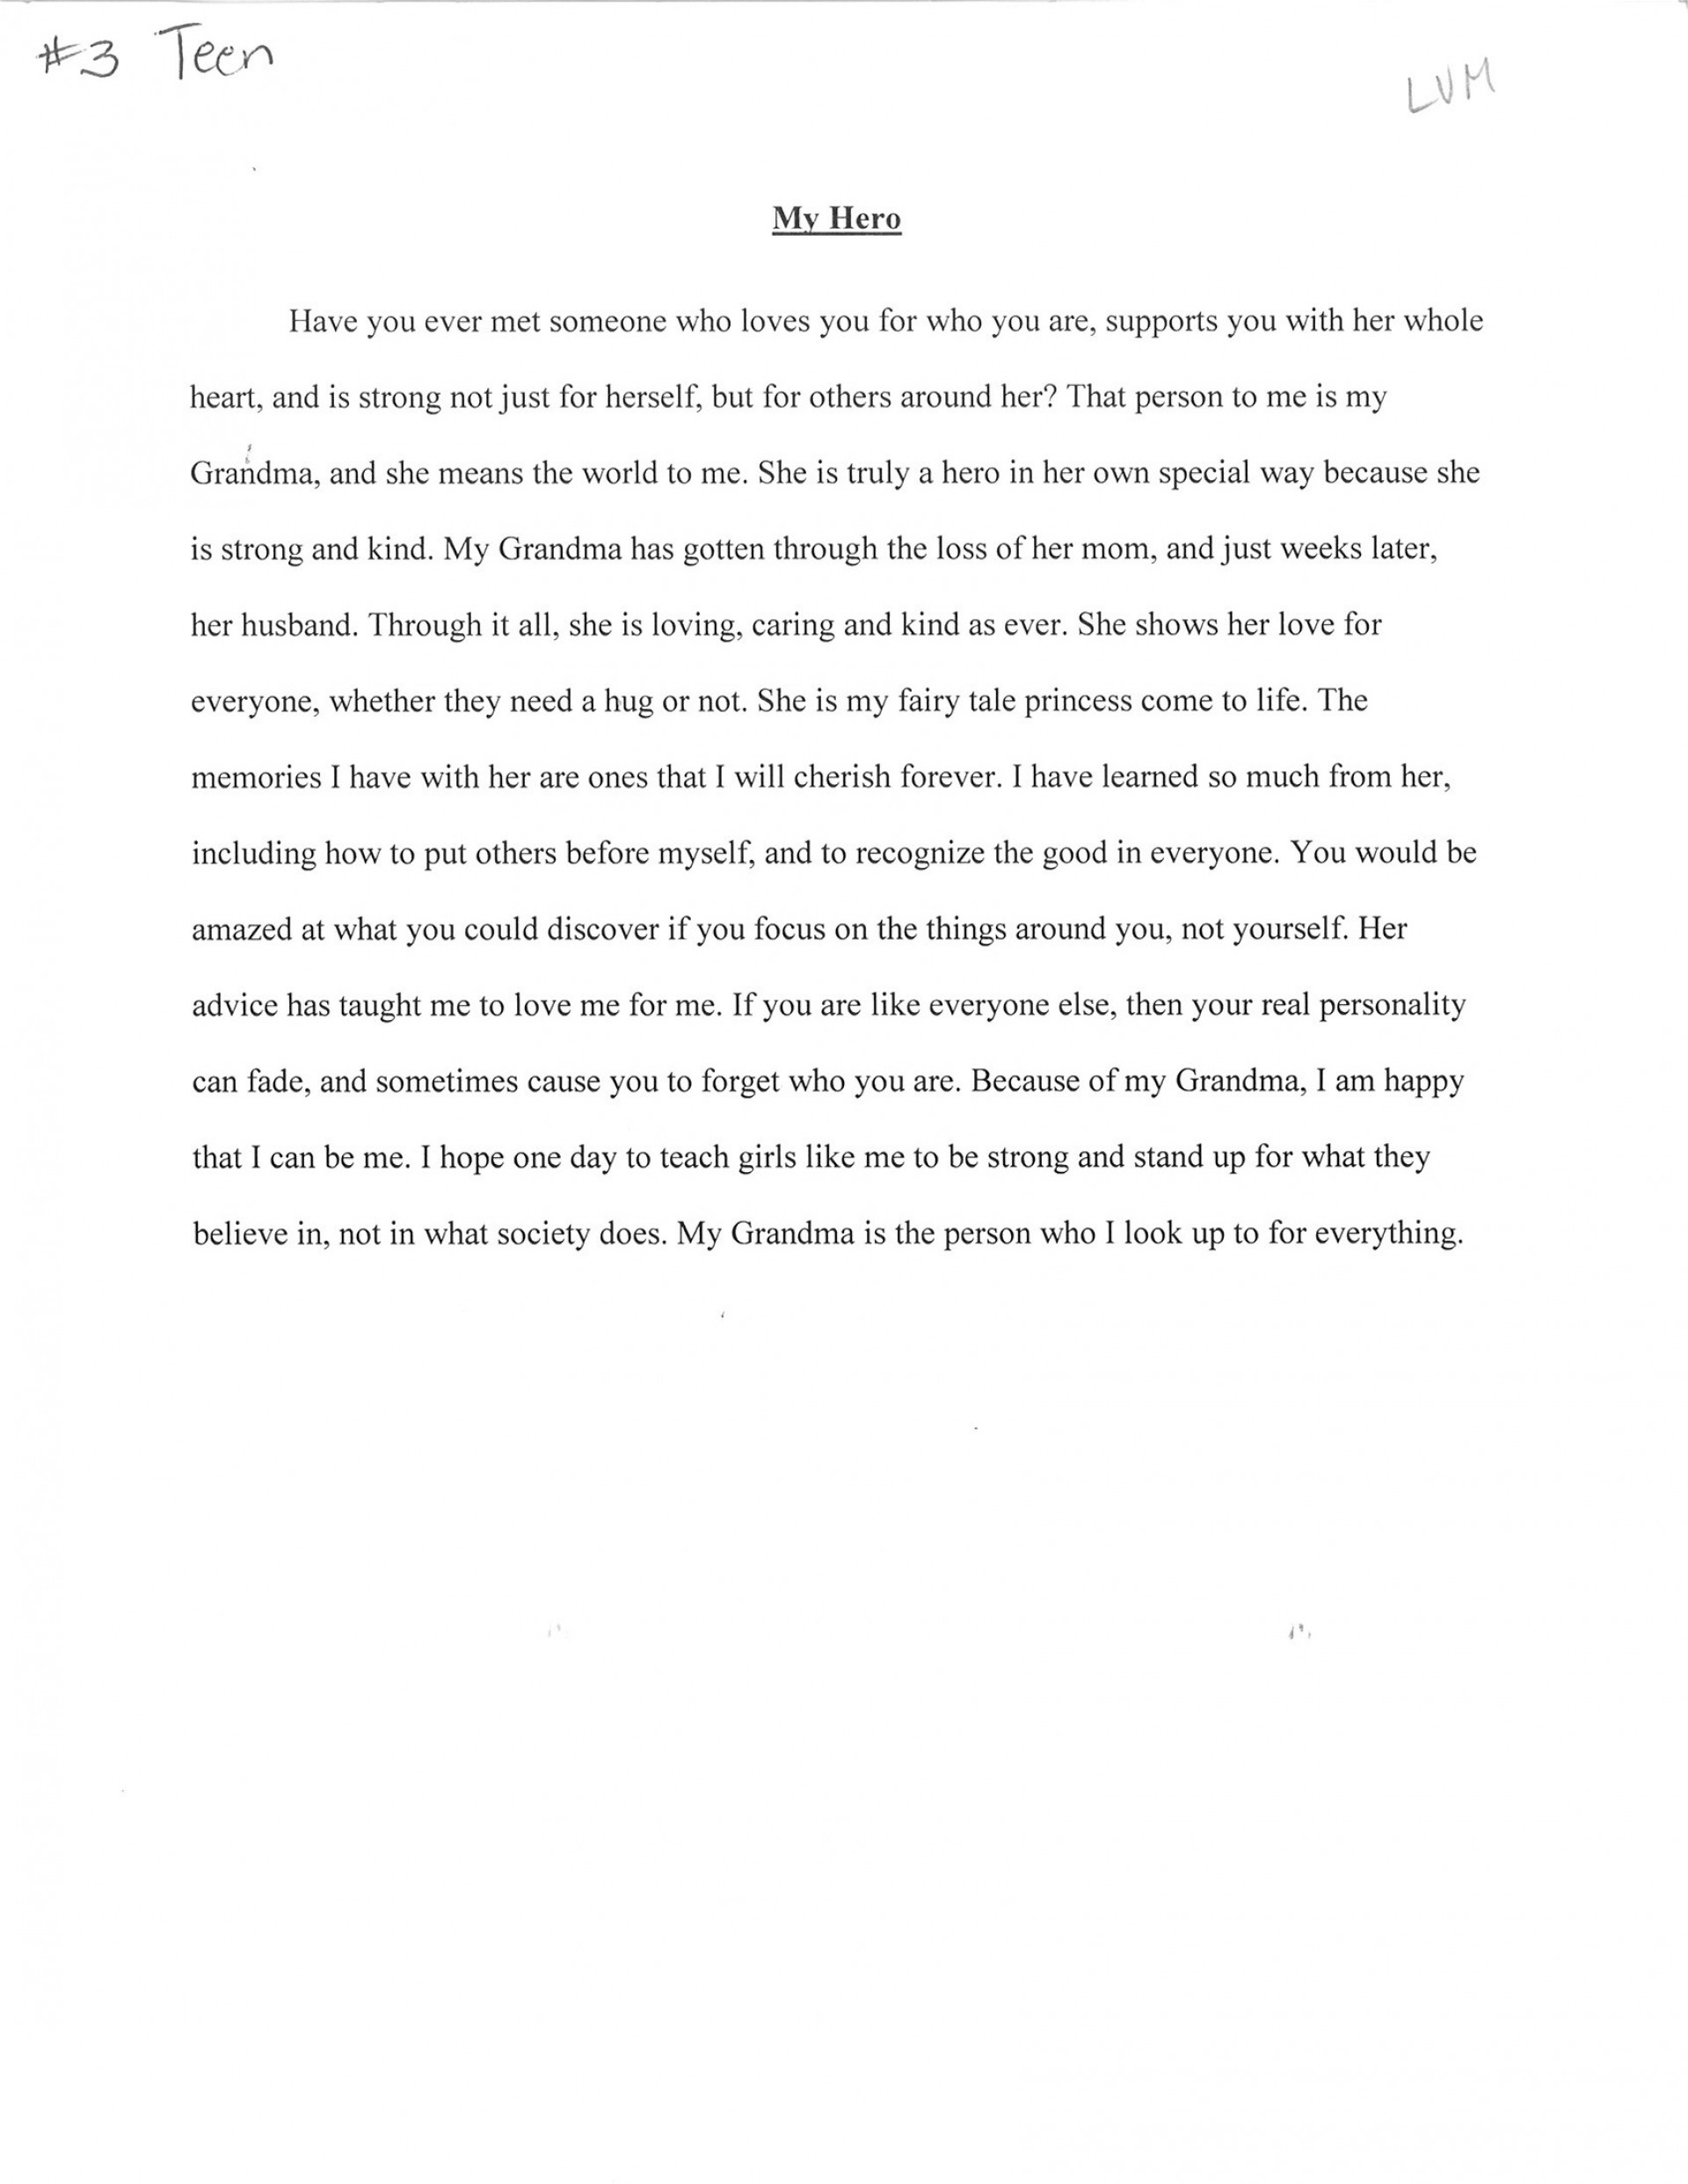 004 Essay Example My Hero Third20place20teen20sarah20horst20 Wondrous In History With Outline Favourite Salman Khan English National 1920